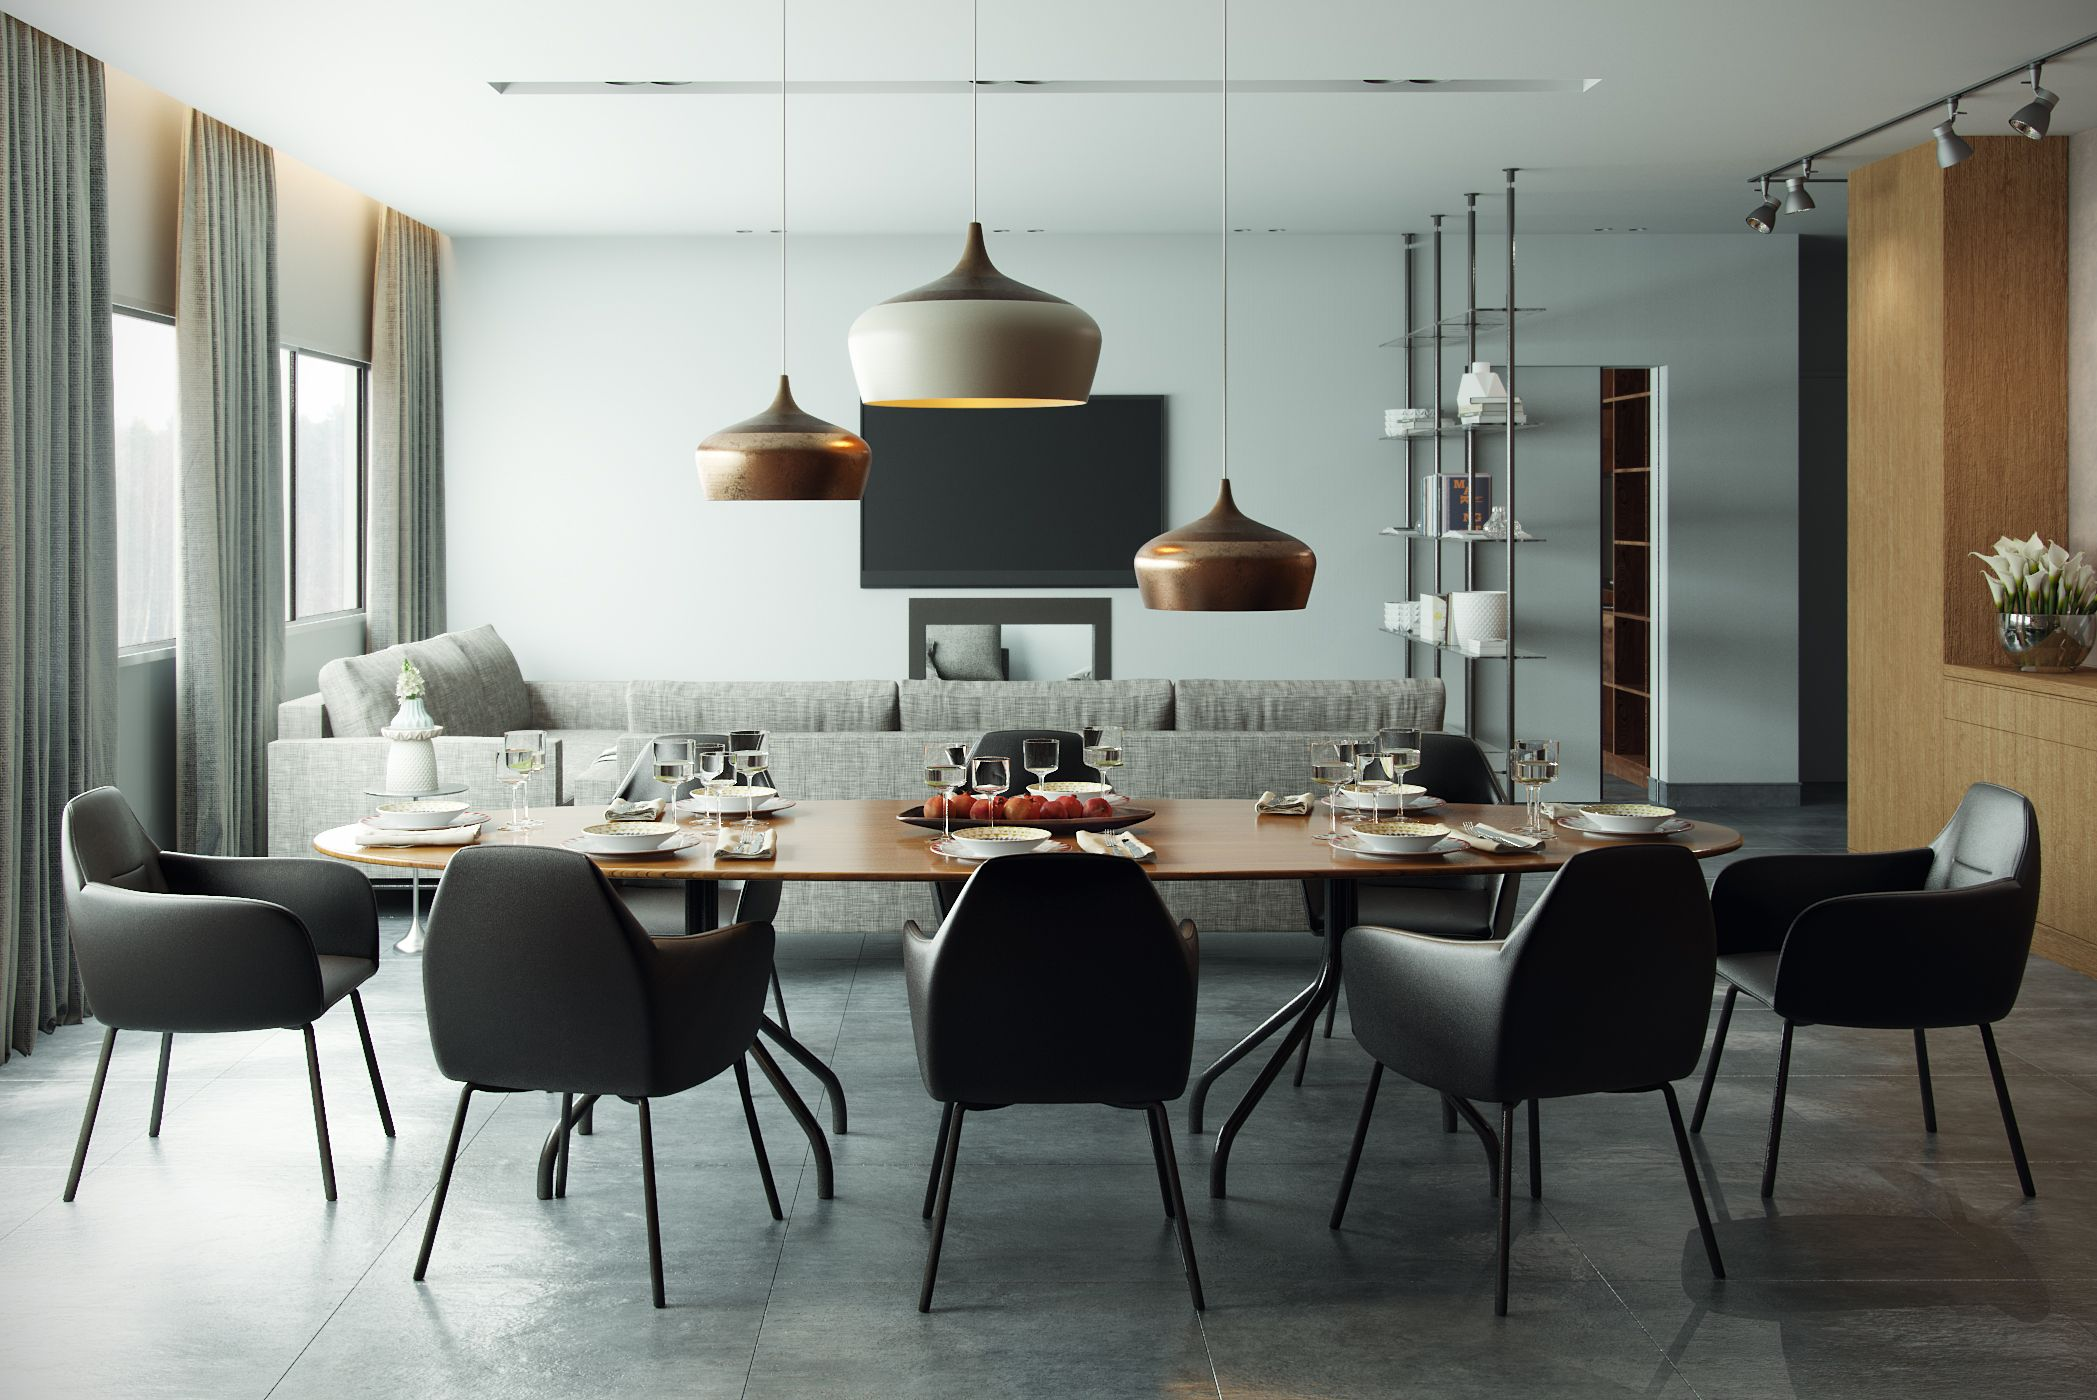 Explore Dining Room Design And More